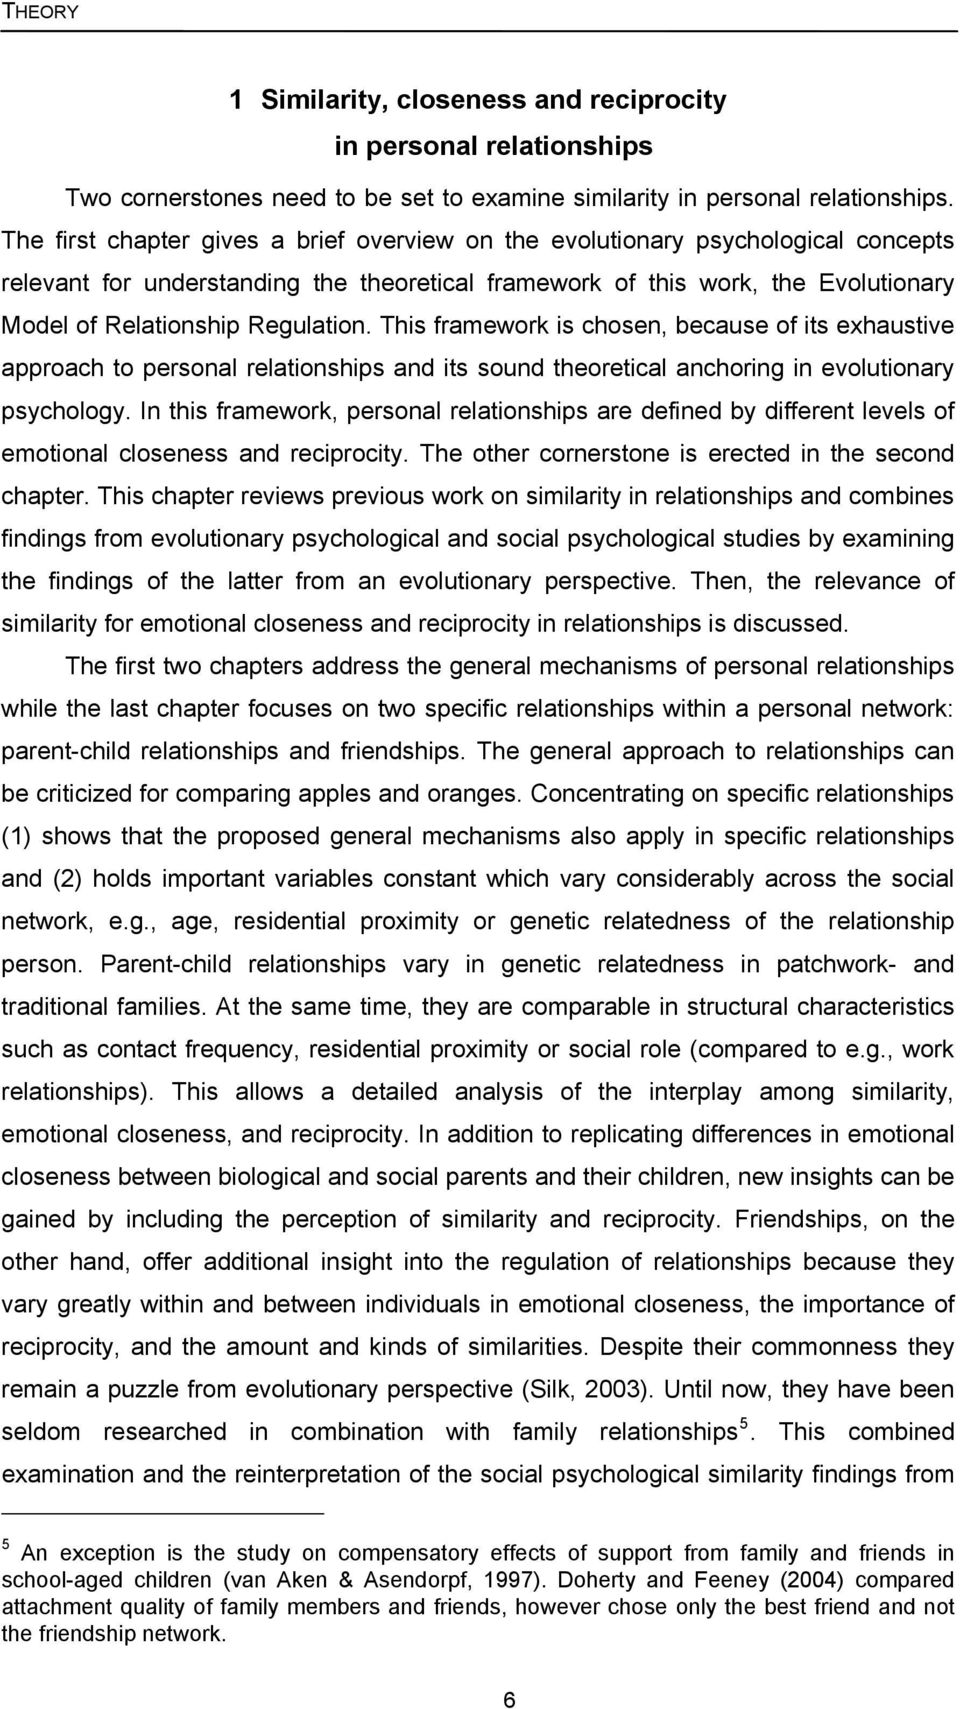 Regulation. This framework is chosen, because of its exhaustive approach to personal relationships and its sound theoretical anchoring in evolutionary psychology.